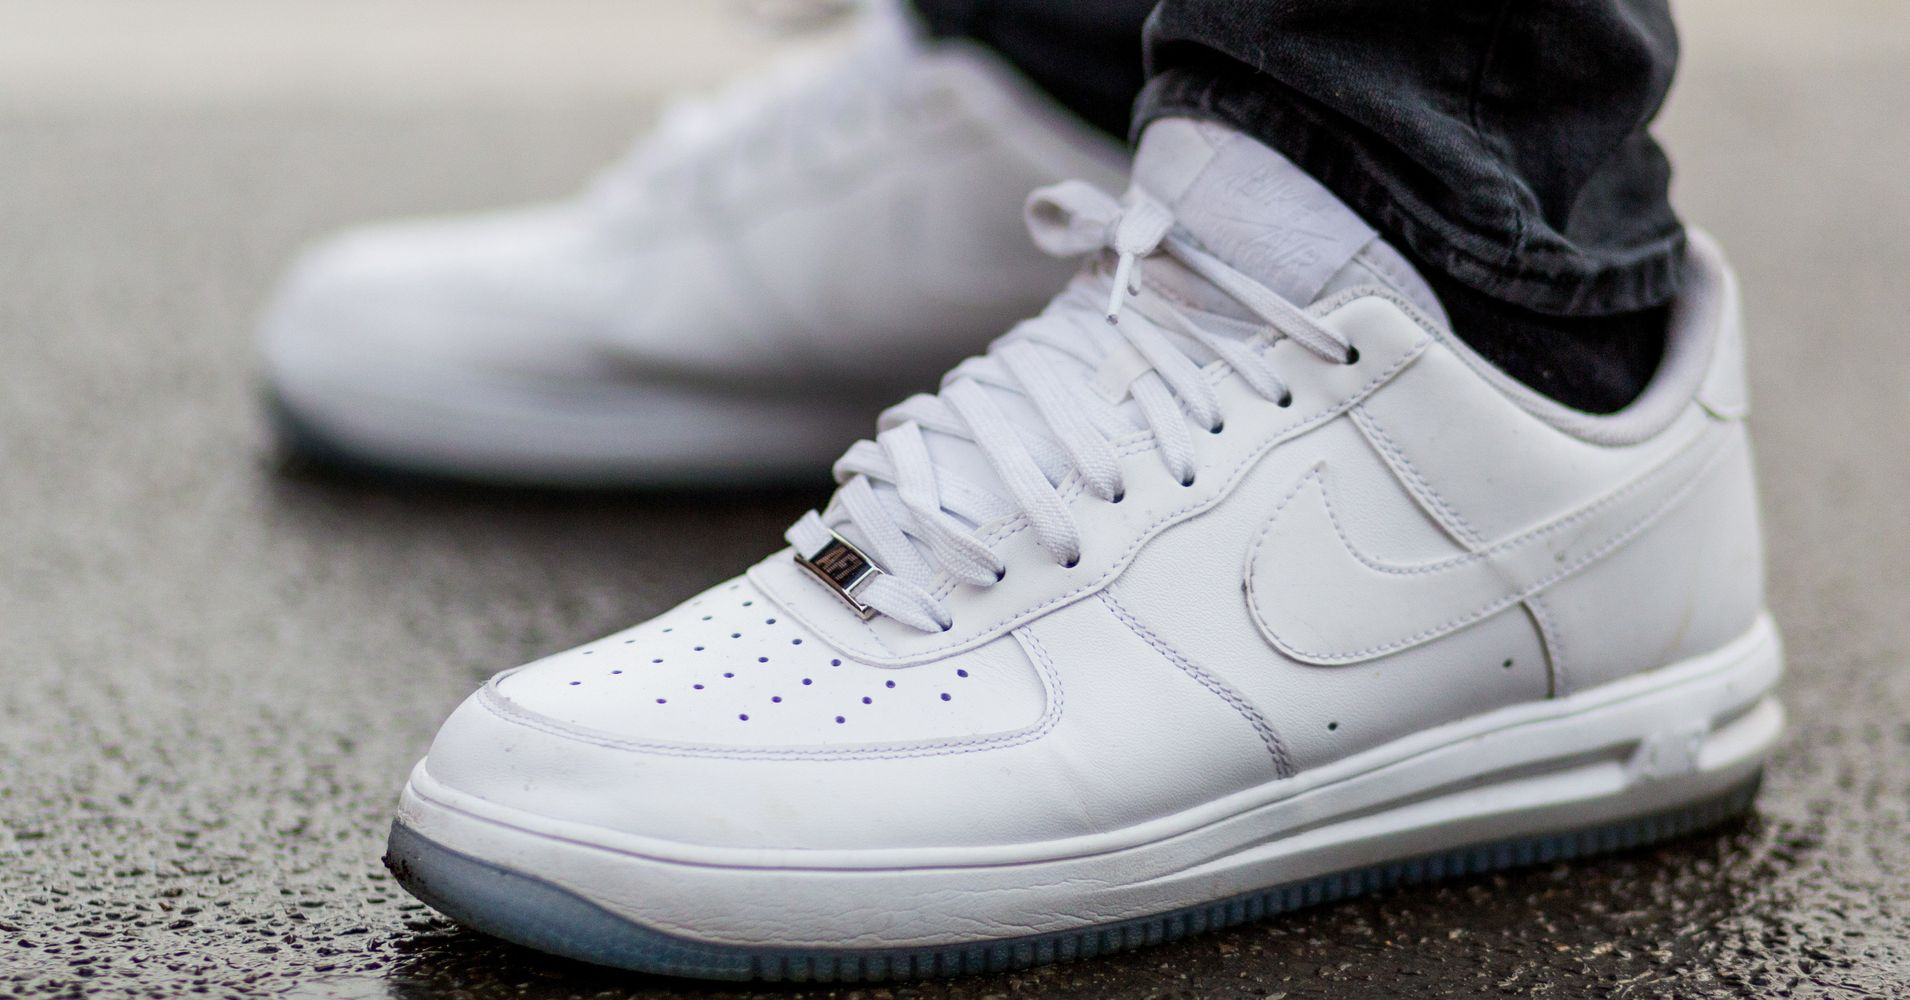 7 Ways To Keep Your White Sneakers Looking Fresh